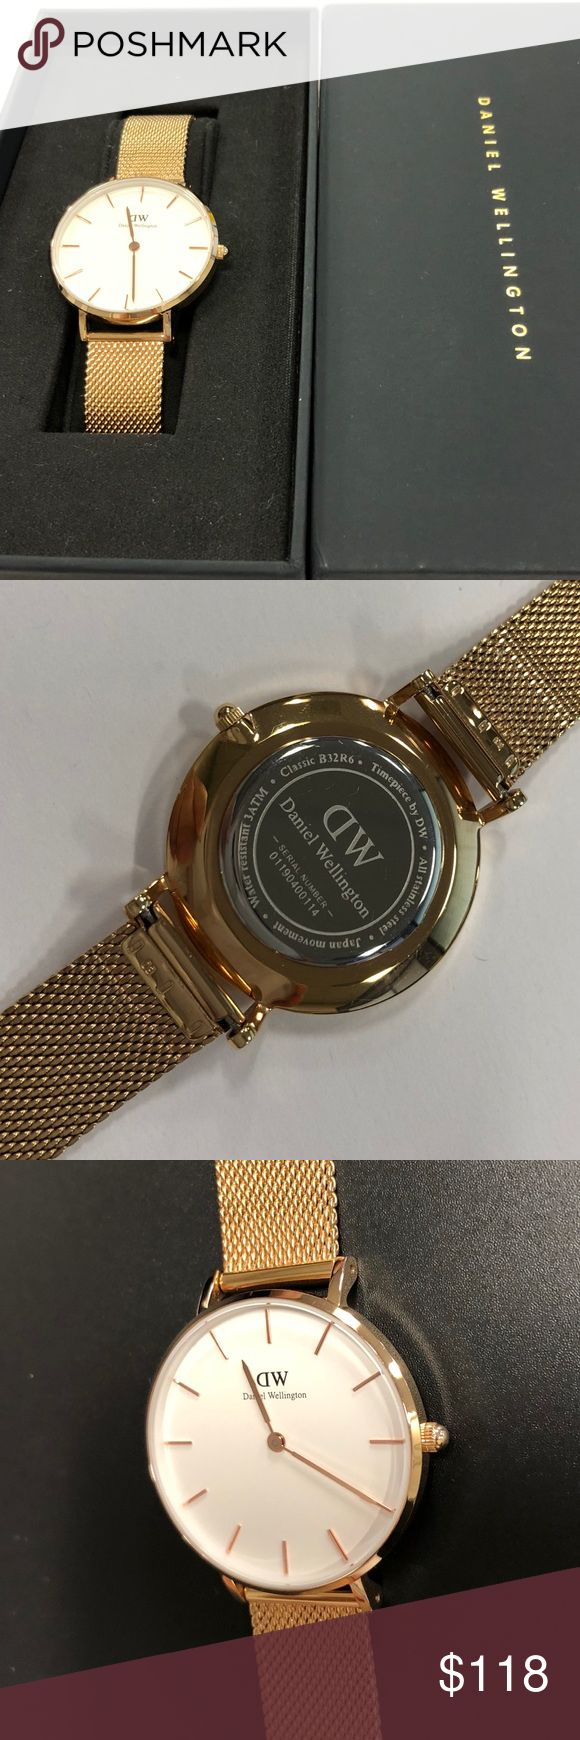 Daniel Wellington Classic Petite Melrose Watch 100% Authentic Gently used like new with box Daniel Wellington Classic Petite Melrose watch with white face dial. 32mm. Bought from Daniel Wellington online. Serial number 01190400114 Daniel Wellington Accessories Watches